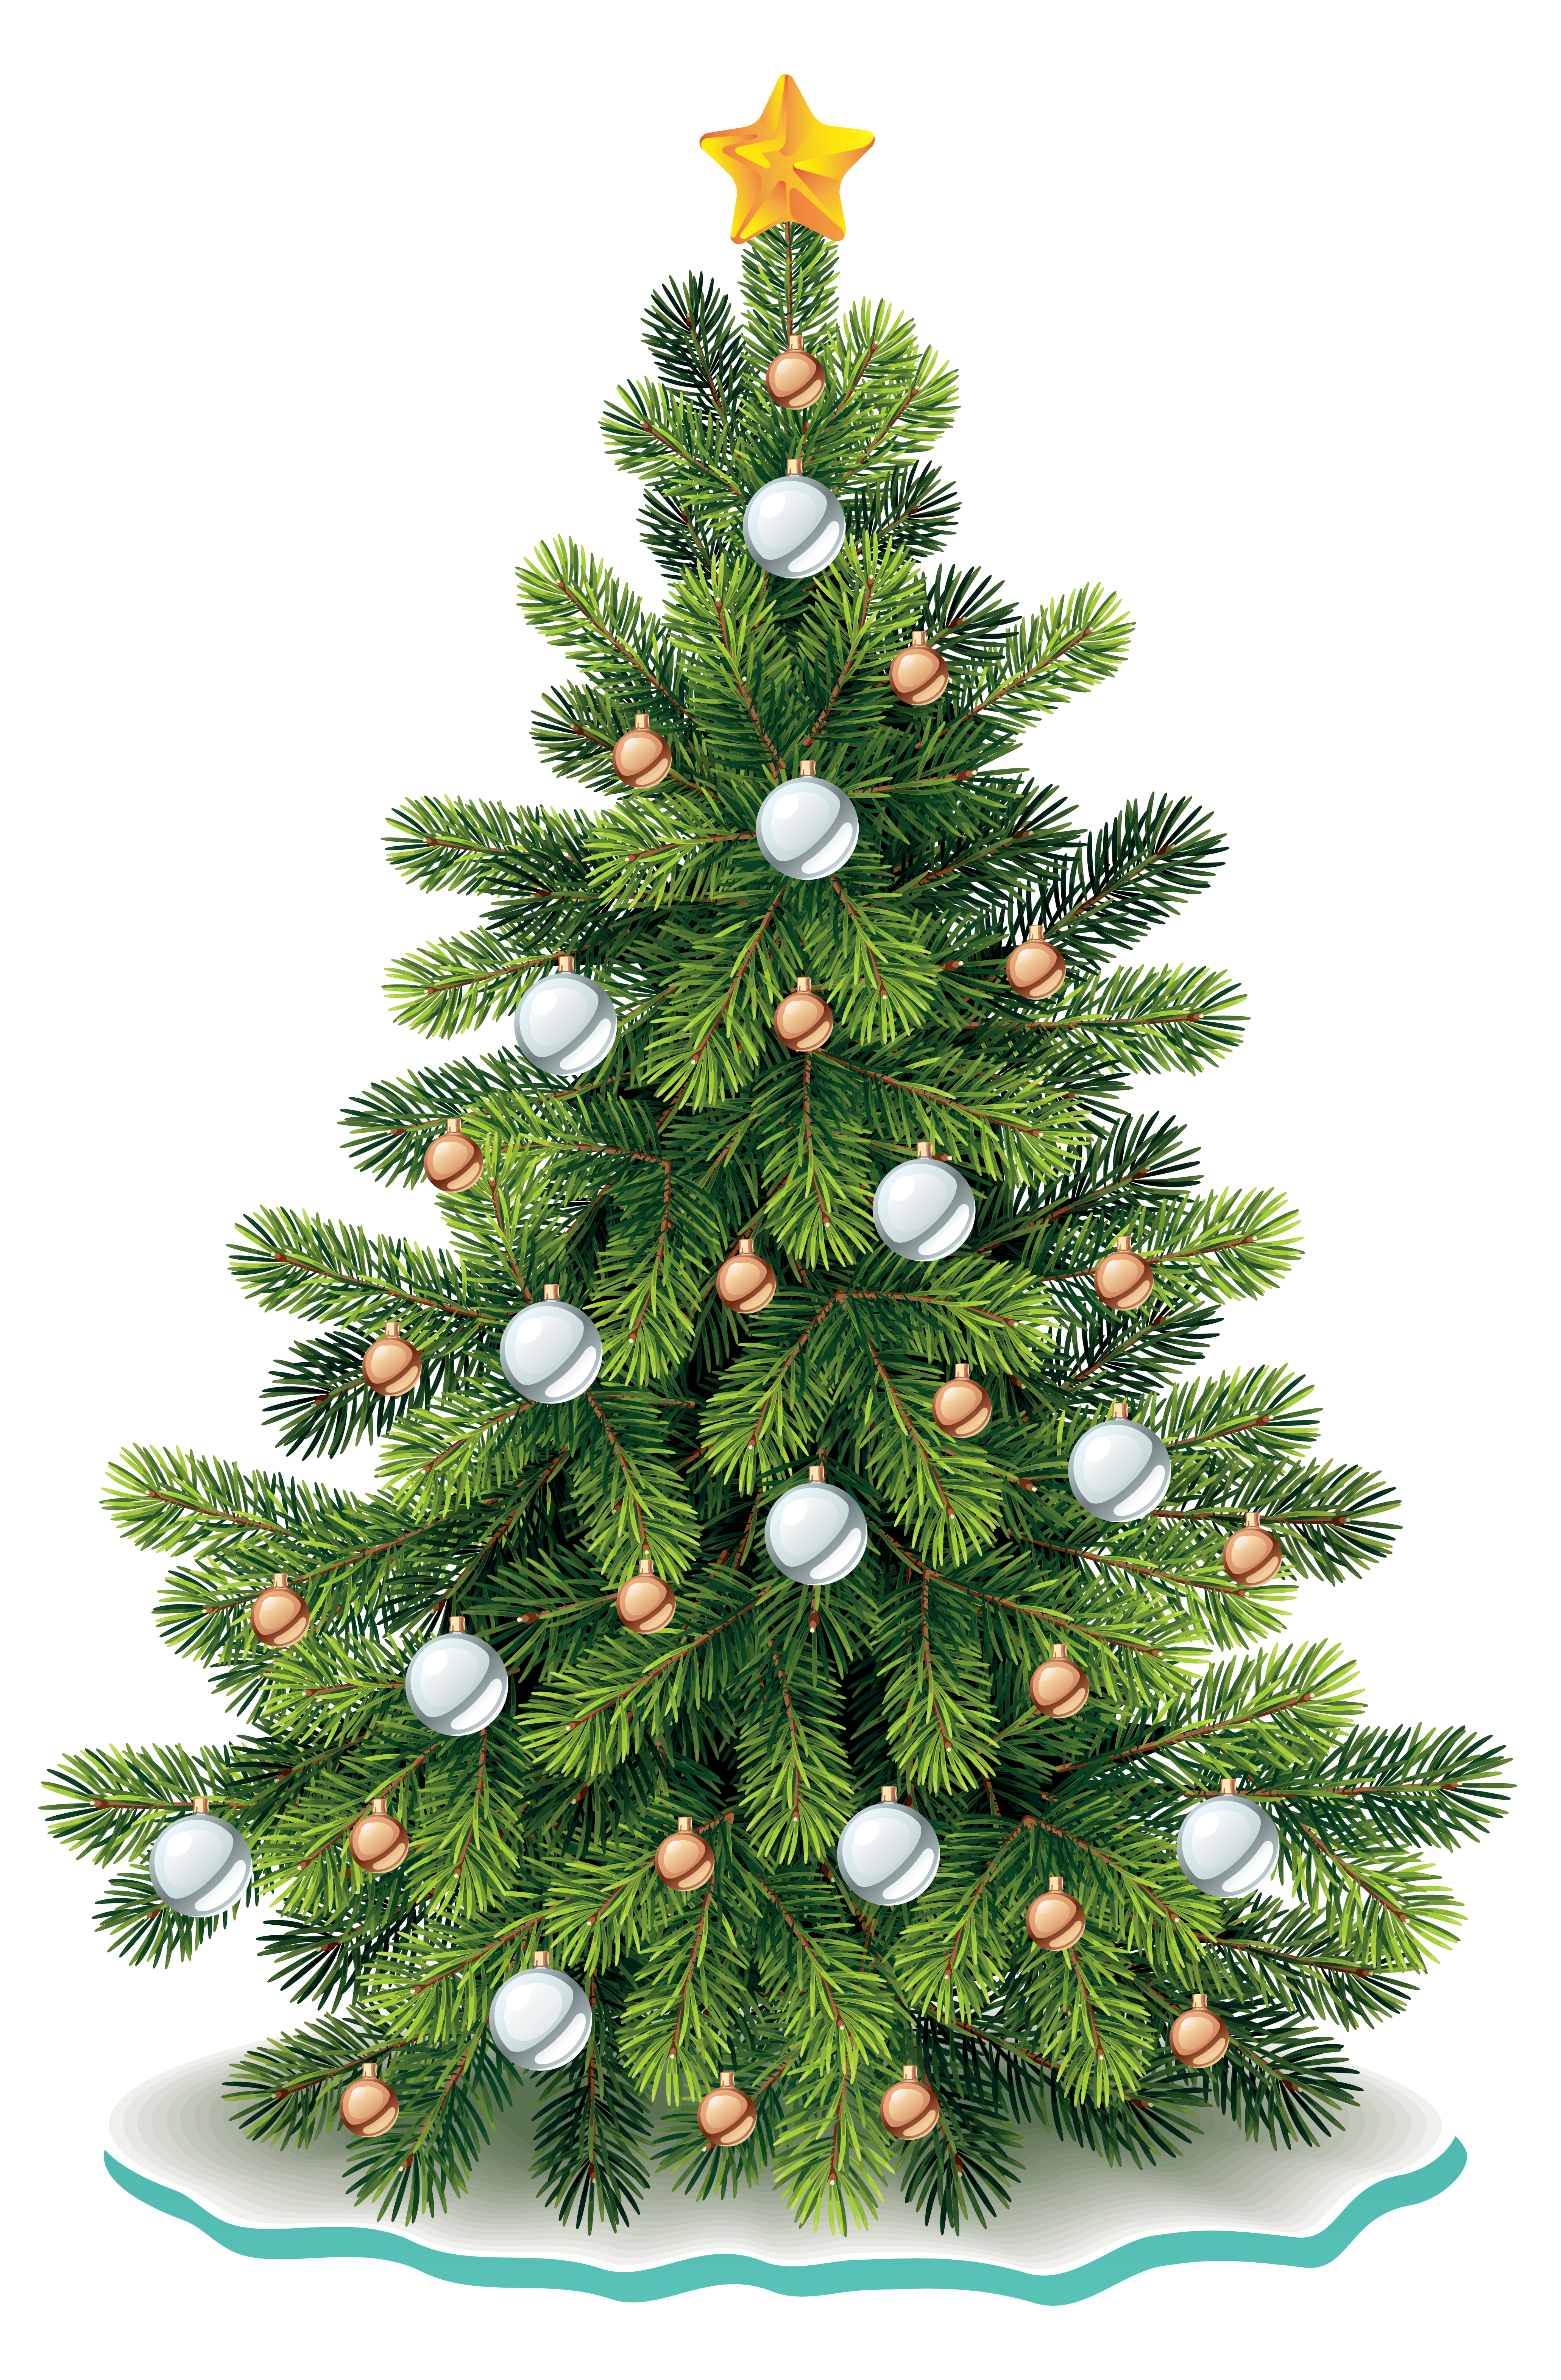 Fir tree clipart graphic free library Christmas Tree PNG Clipart Image | Gallery Yopriceville - High ... graphic free library